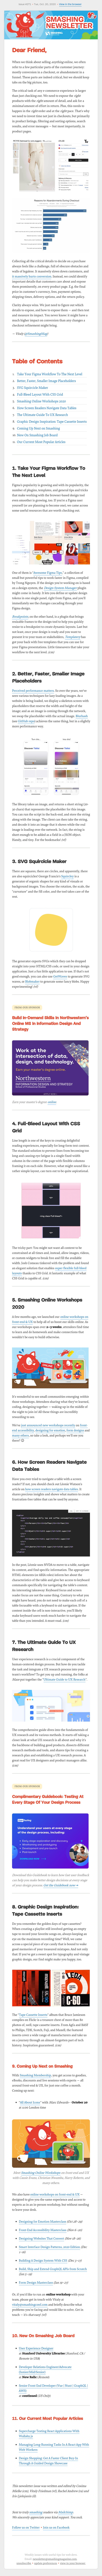 Smashing Newsletter #271: SVG Generators, Figma and Accessibility